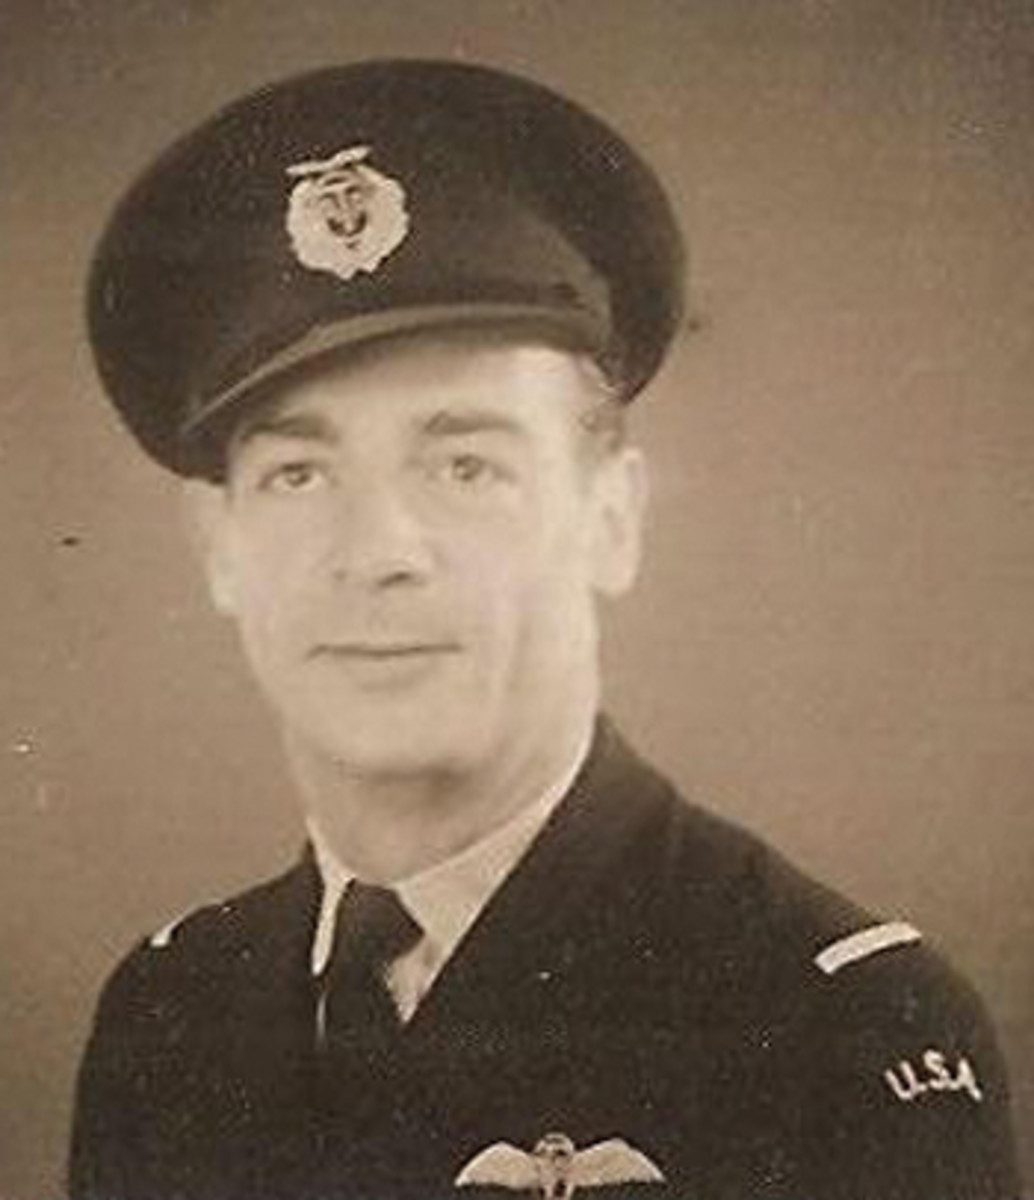 Lieut. Col. Anthony F. Story, had served as a ferry pilot for the Royal Air Force's Air Transport Auxiliary before becoming the personal pilot of Gen. Douglas MacArthur from 1945 through the General's dismissal during the Korean War.